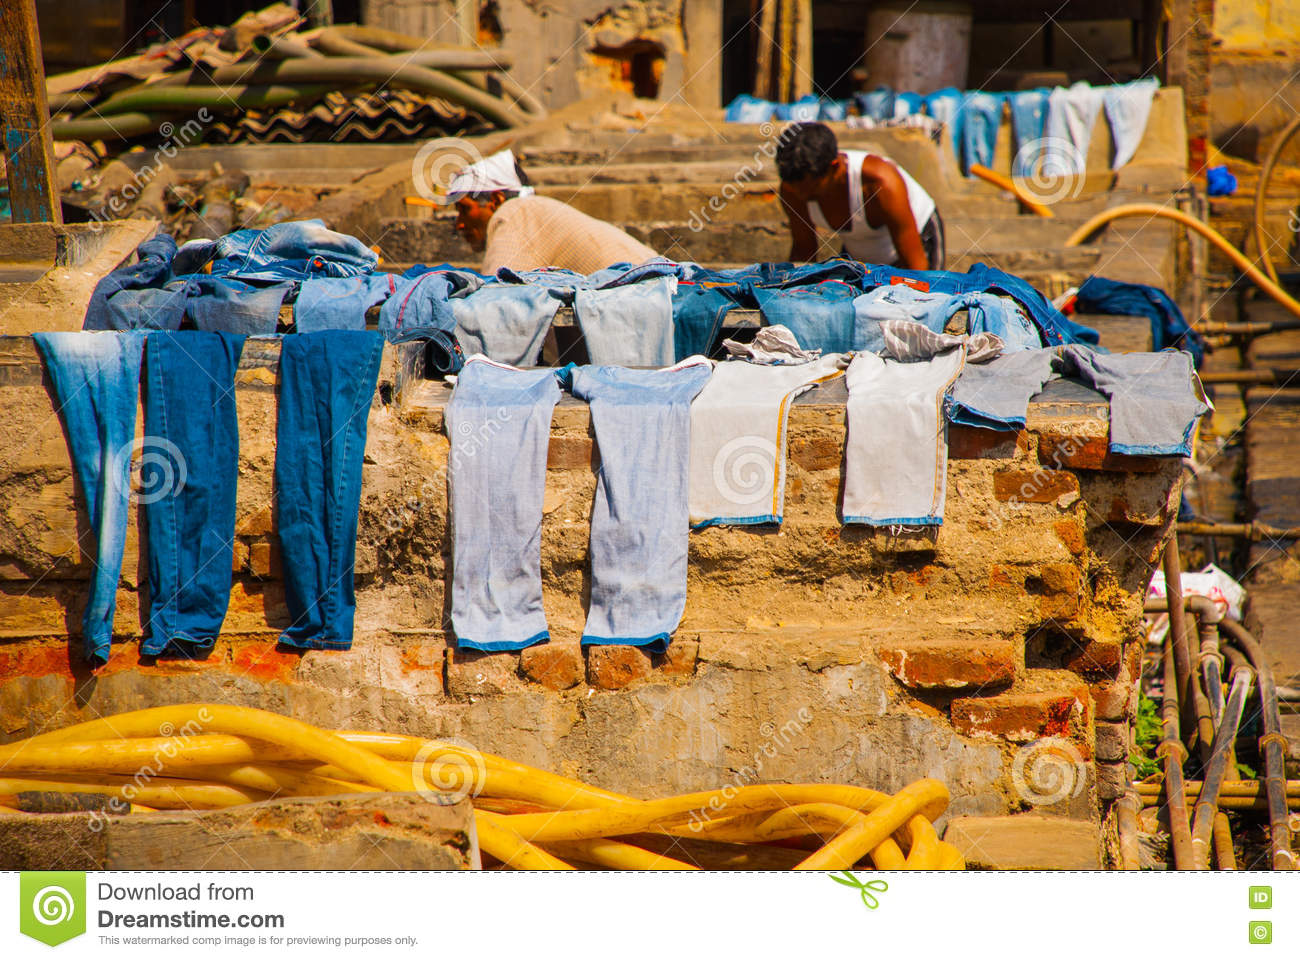 Are there launderettes? - Sliema Forum